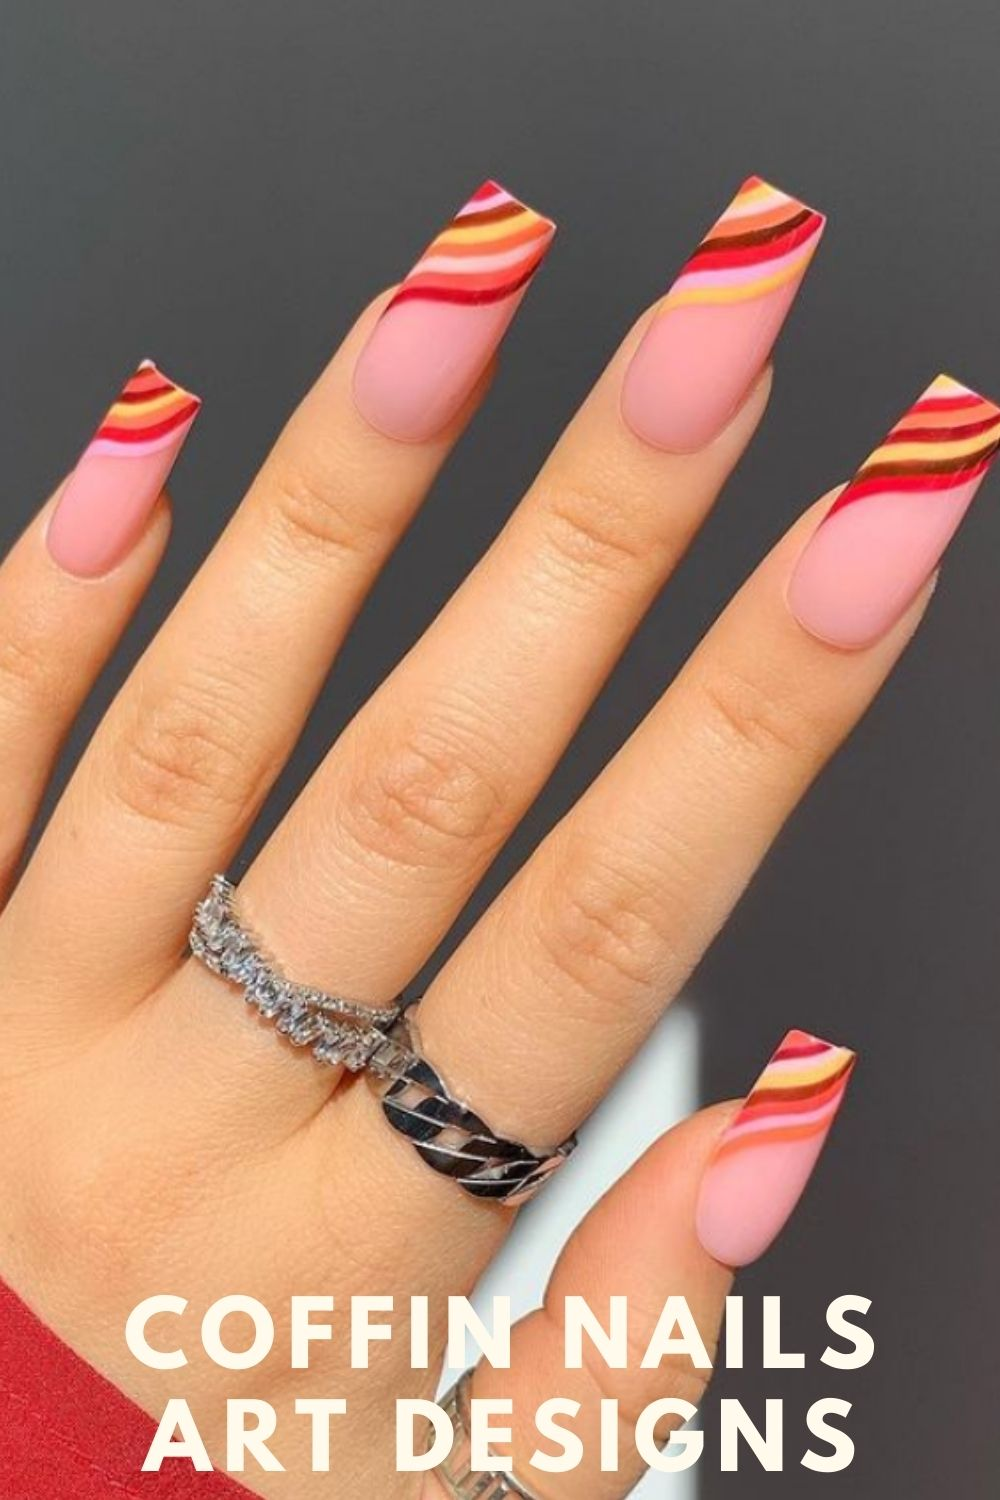 When I see this nail design, the first thing that comes to my mind is chocolate. What about you?